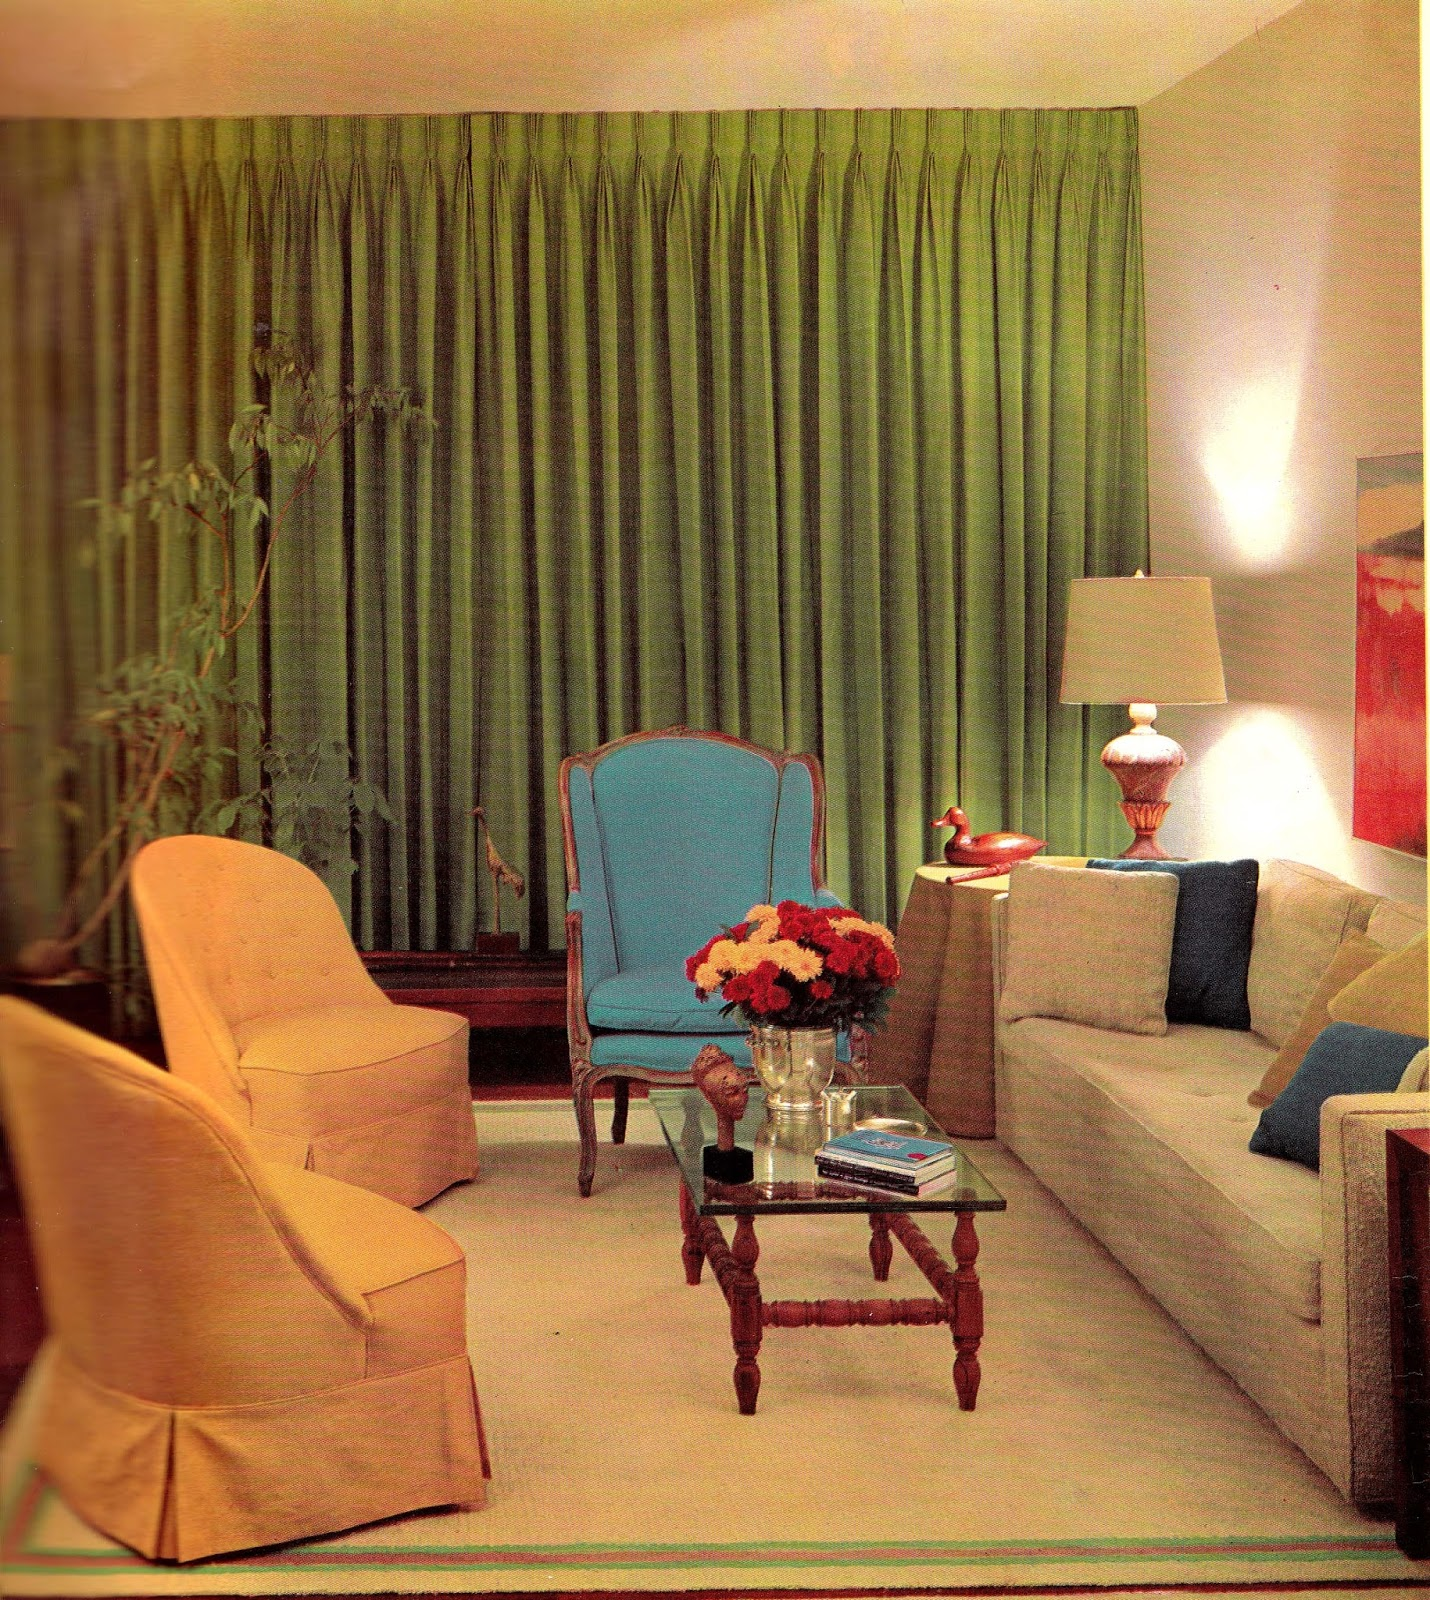 1960s Interior Décor: The Decade Of Psychedelia Gave Rise